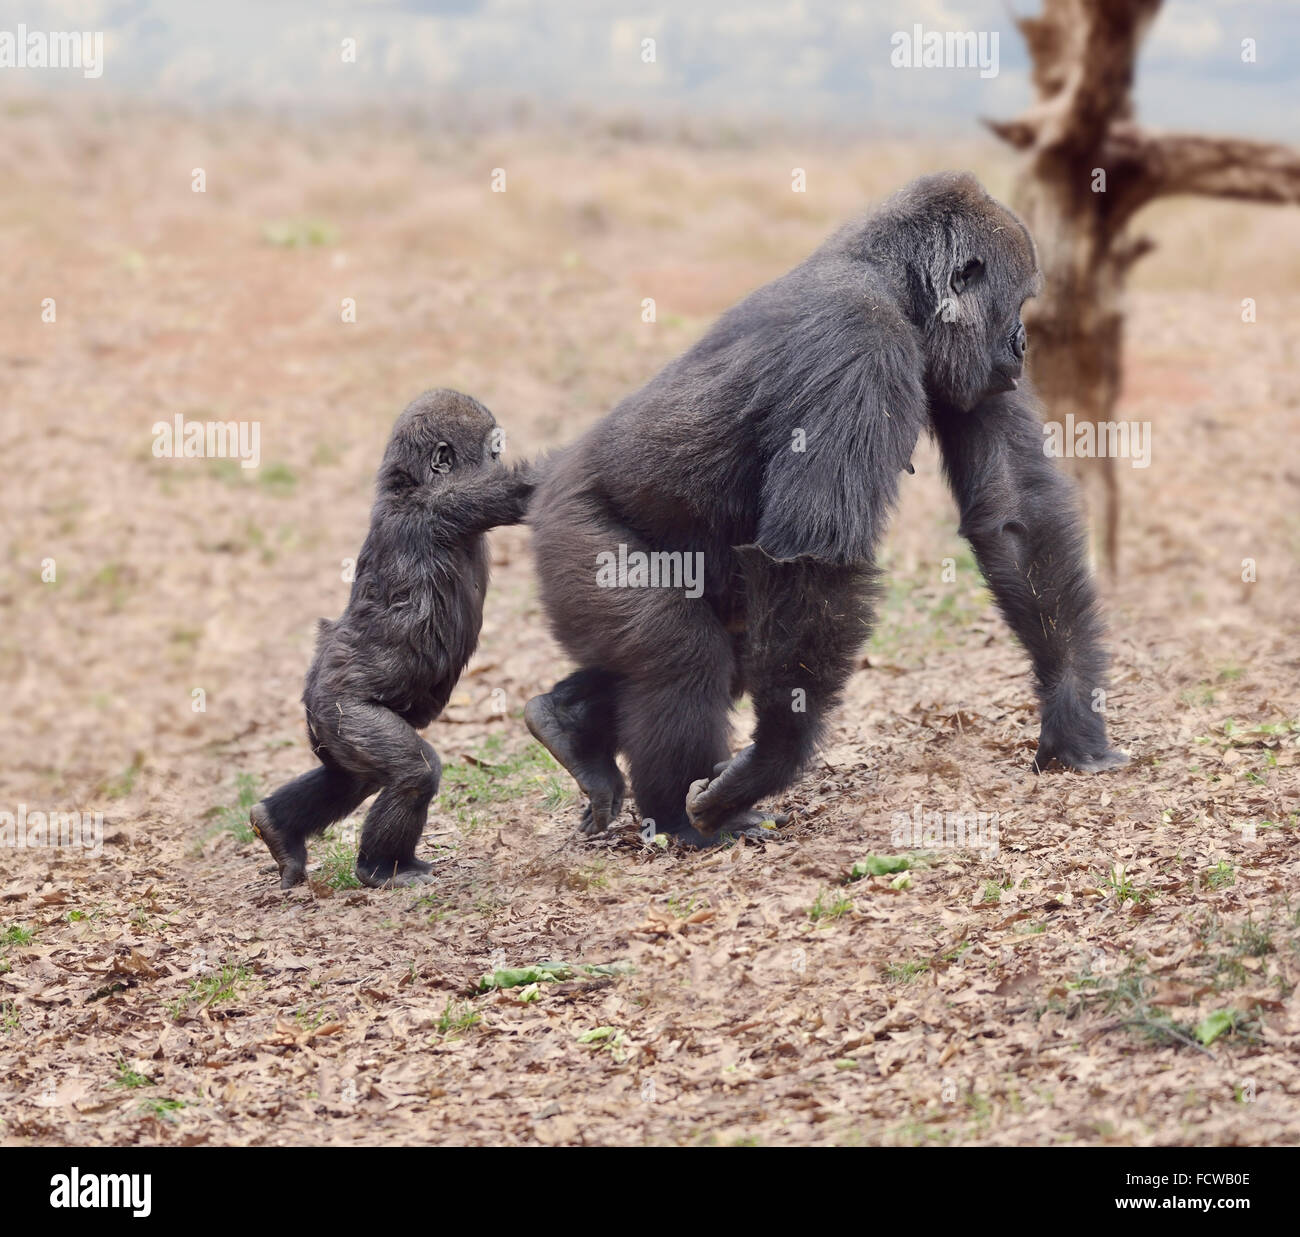 Gorilla Female with Her Baby Walking - Stock Image